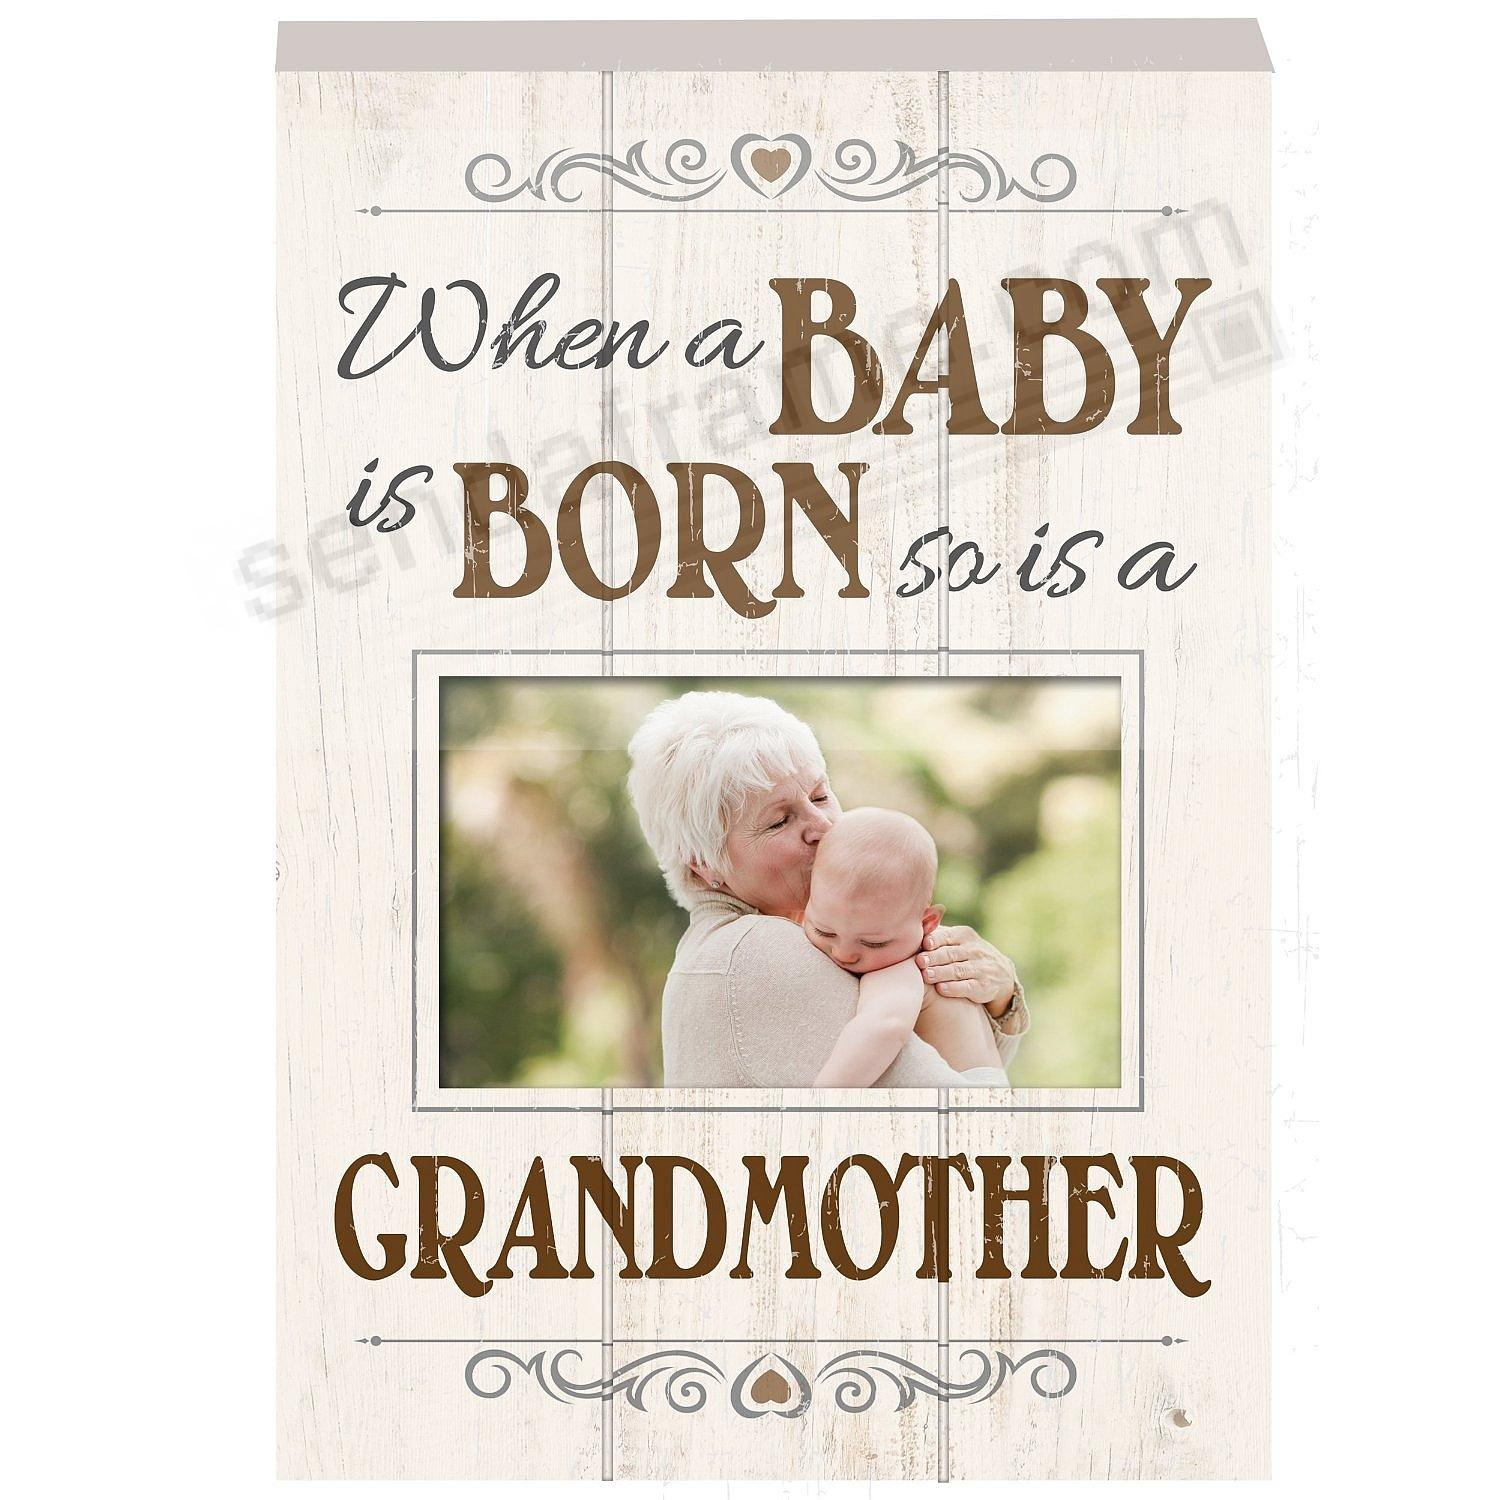 When a Baby is Born - so is a GRANDMOTHER Wood Block Frame by Prinz ...